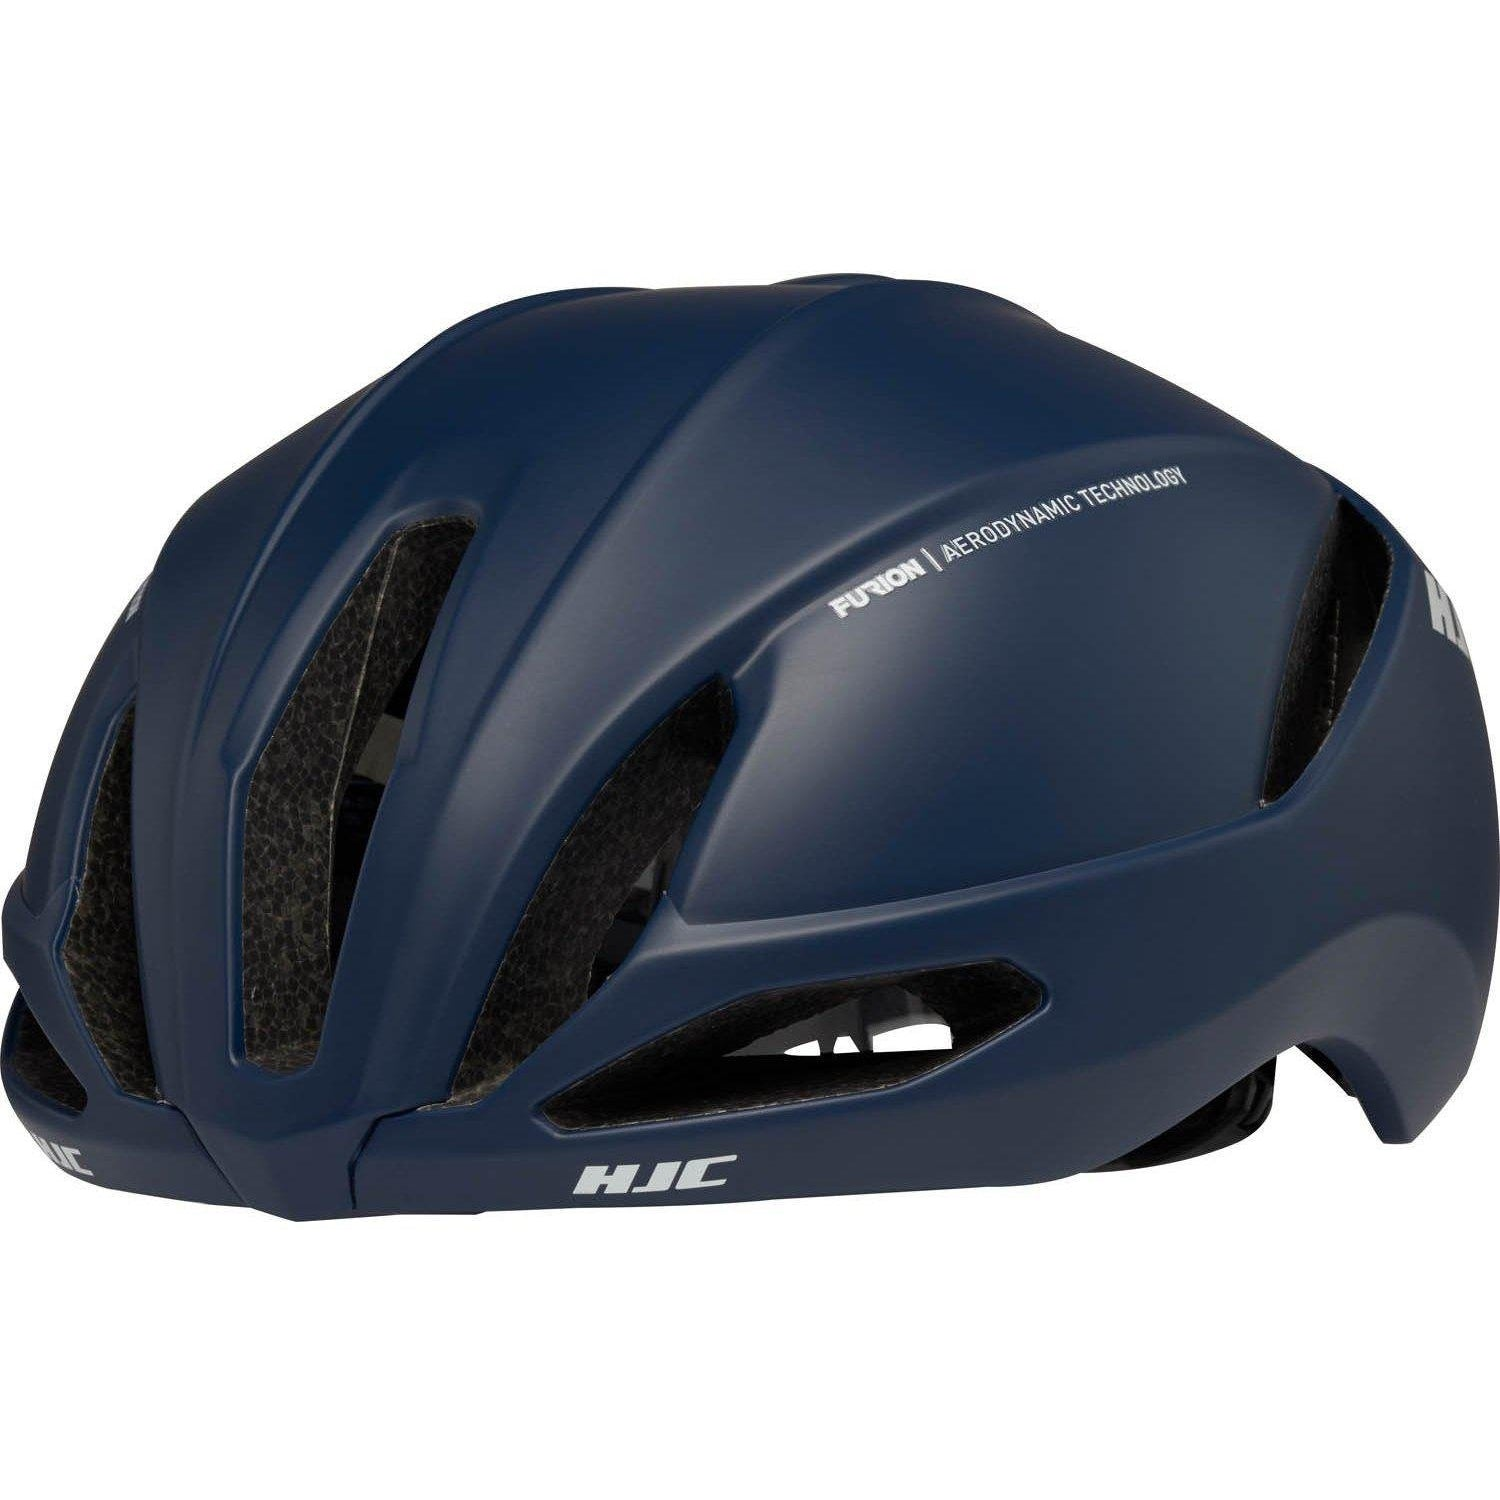 HJC-HJC Furion 2.0 Road Cycling Helmet-Navy-S-HJC81210201-saddleback-elite-performance-cycling